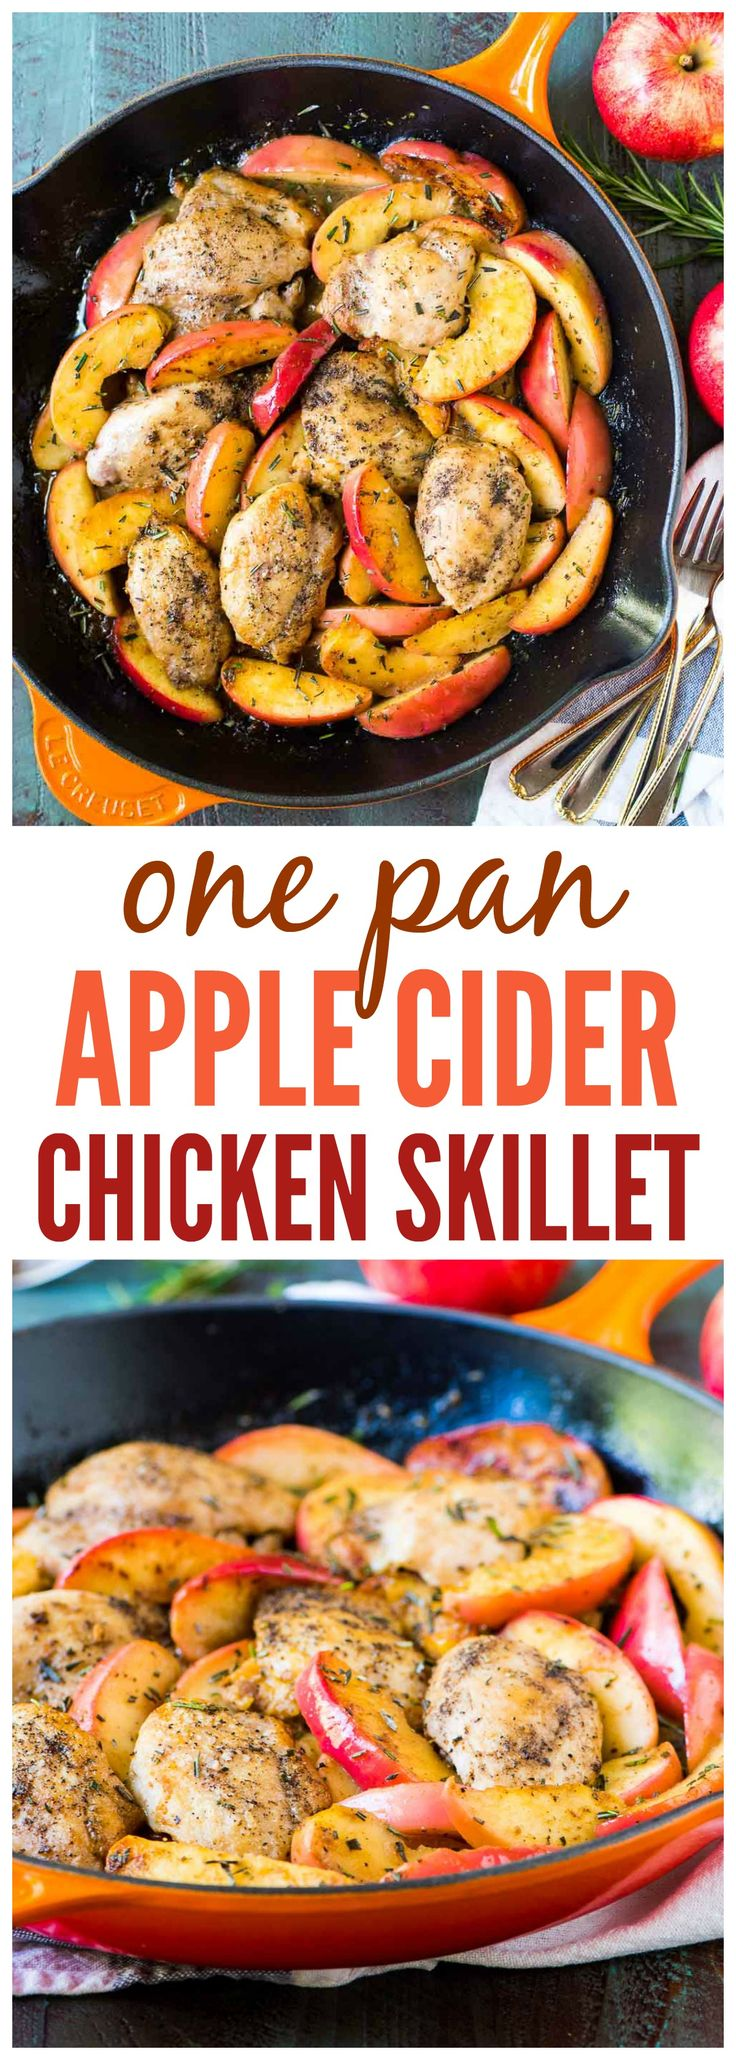 Apple Cider Chicken Skillet. ONE PAN is all you need to make this easy, elegant recipe. Ready in 30 minutes! @wellplated {gluten free, paleo, whole 30}